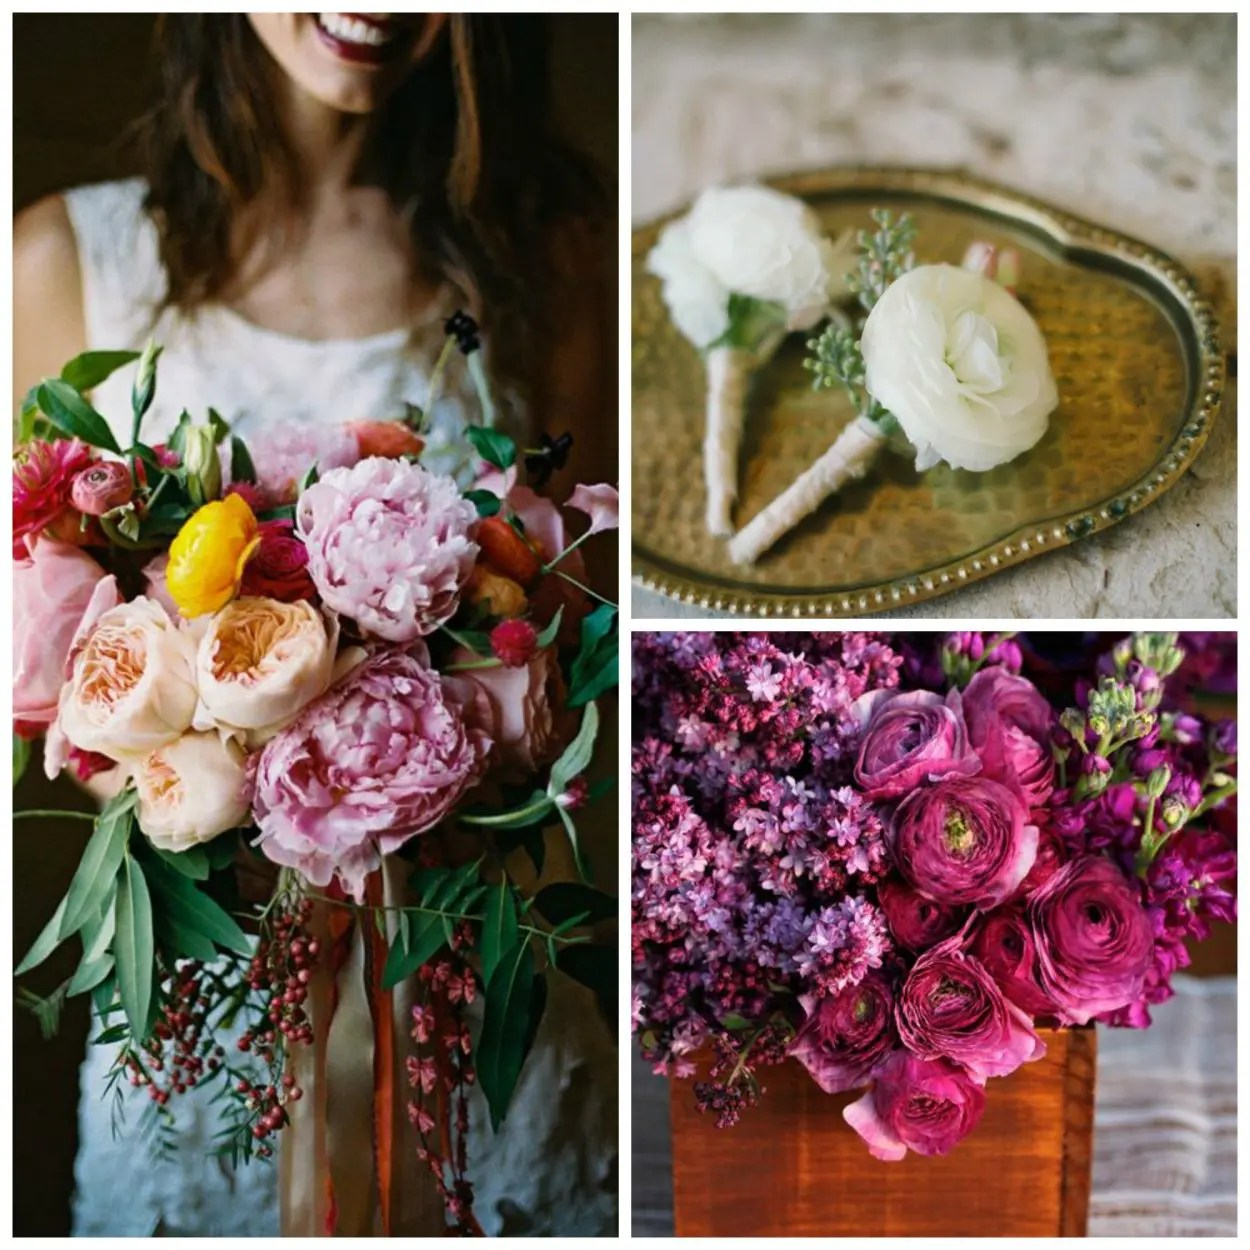 Rustic wedding floral bouquets ranunculus maine wedding venue maine wedding venue izmirmasajfo